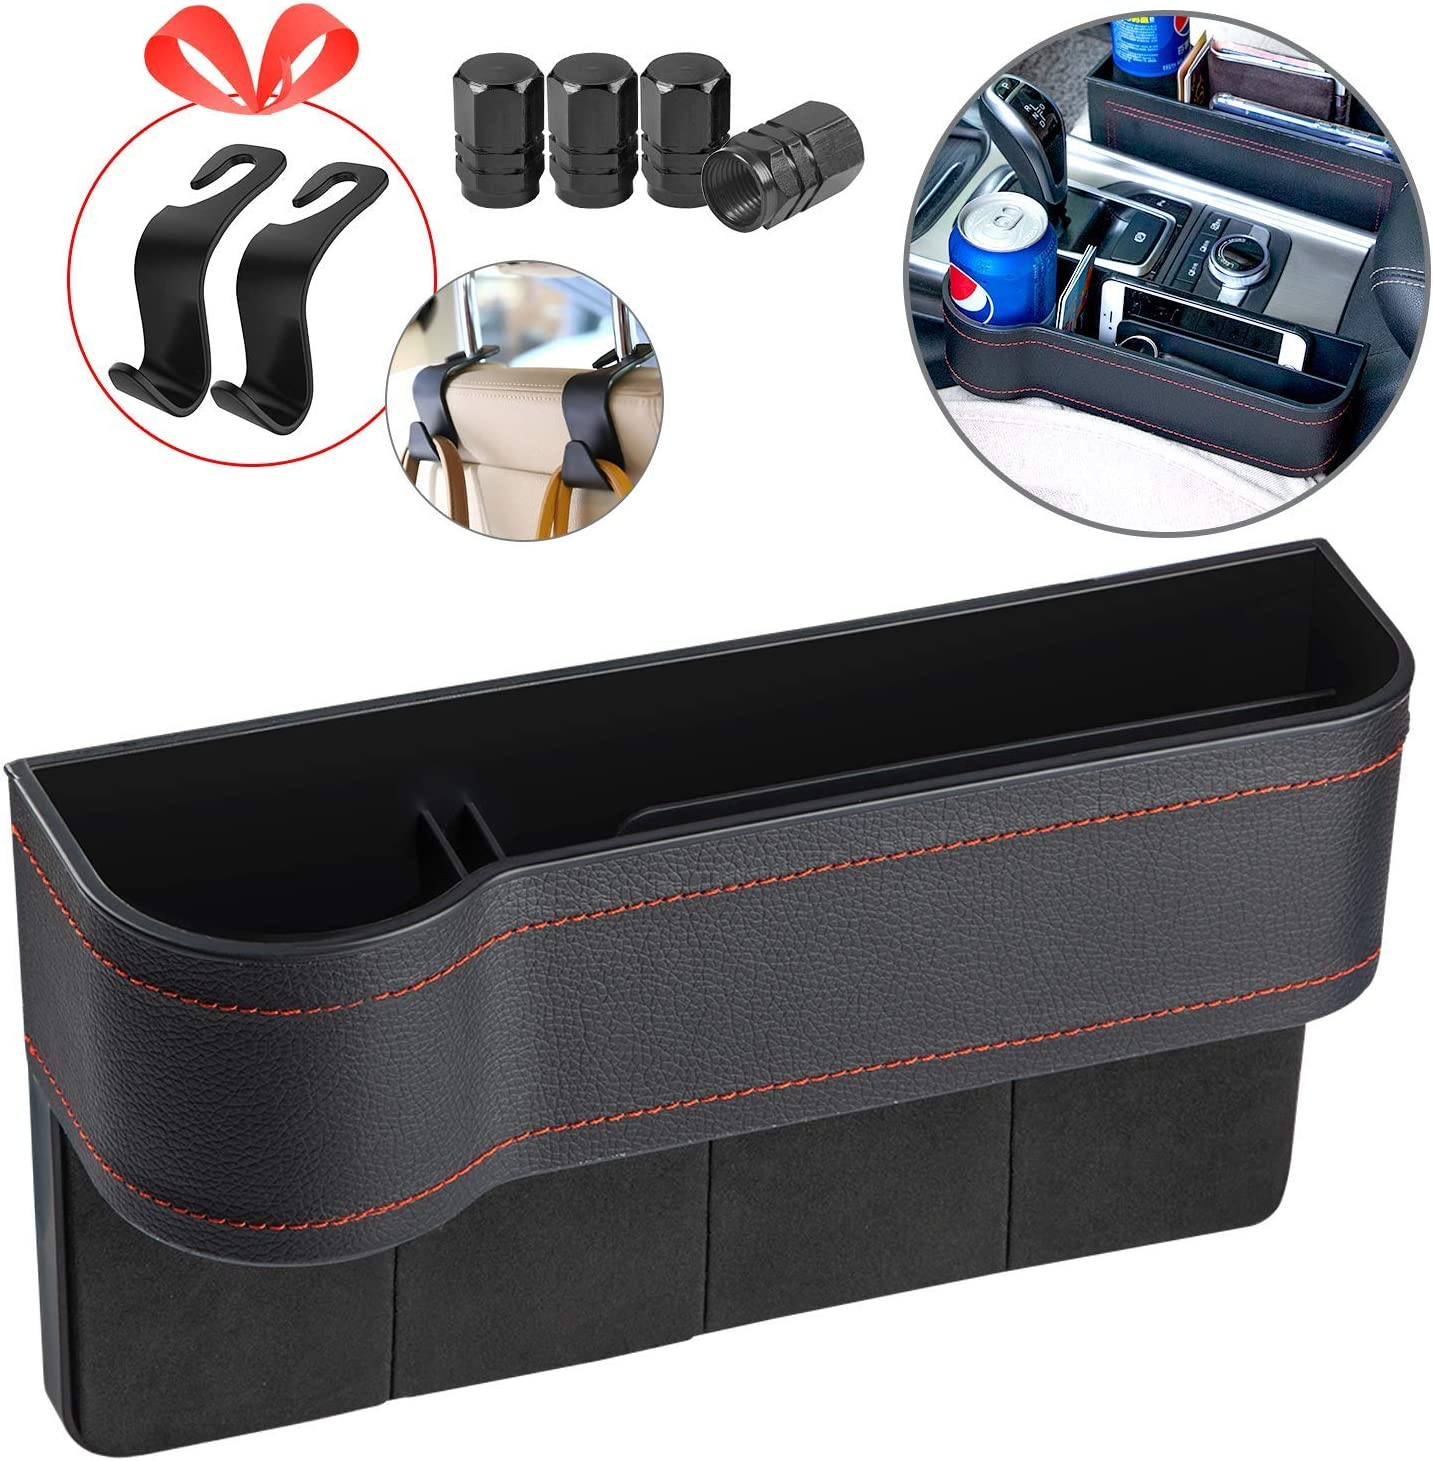 for Cellphone,Wallet Console Side Pocket 2 Packs Premium PU Black Car Seat Gap Filler,No Deformation,Environmentally Friendly Materials Various Cards(Include 4 car seat Back Hooks) Cup Holder